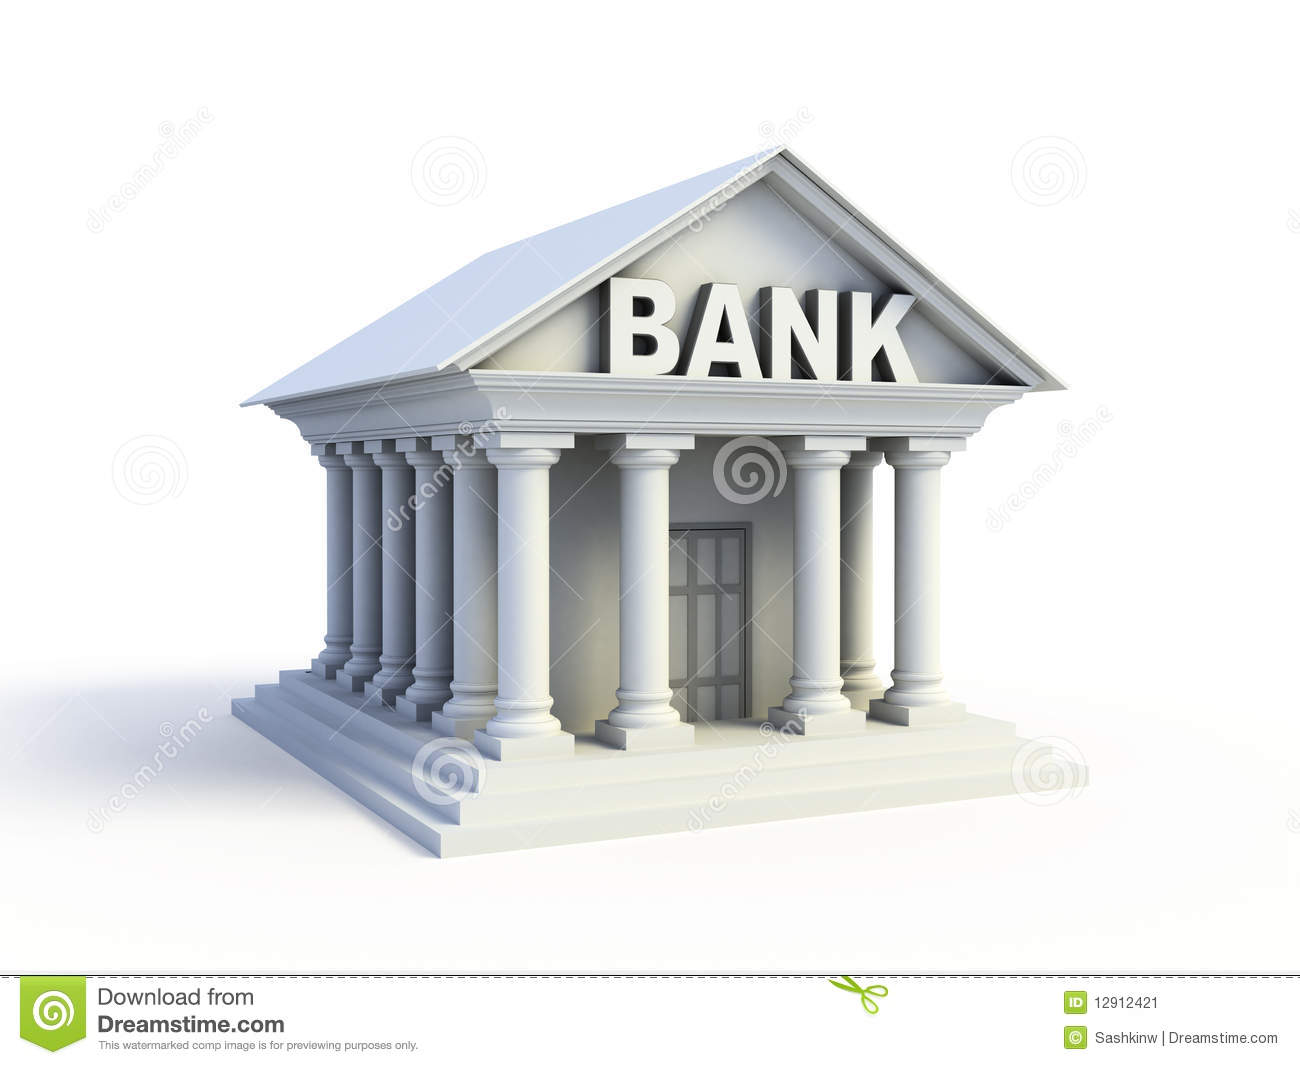 Bank 3d Icon Stock Image - Image: 12912421